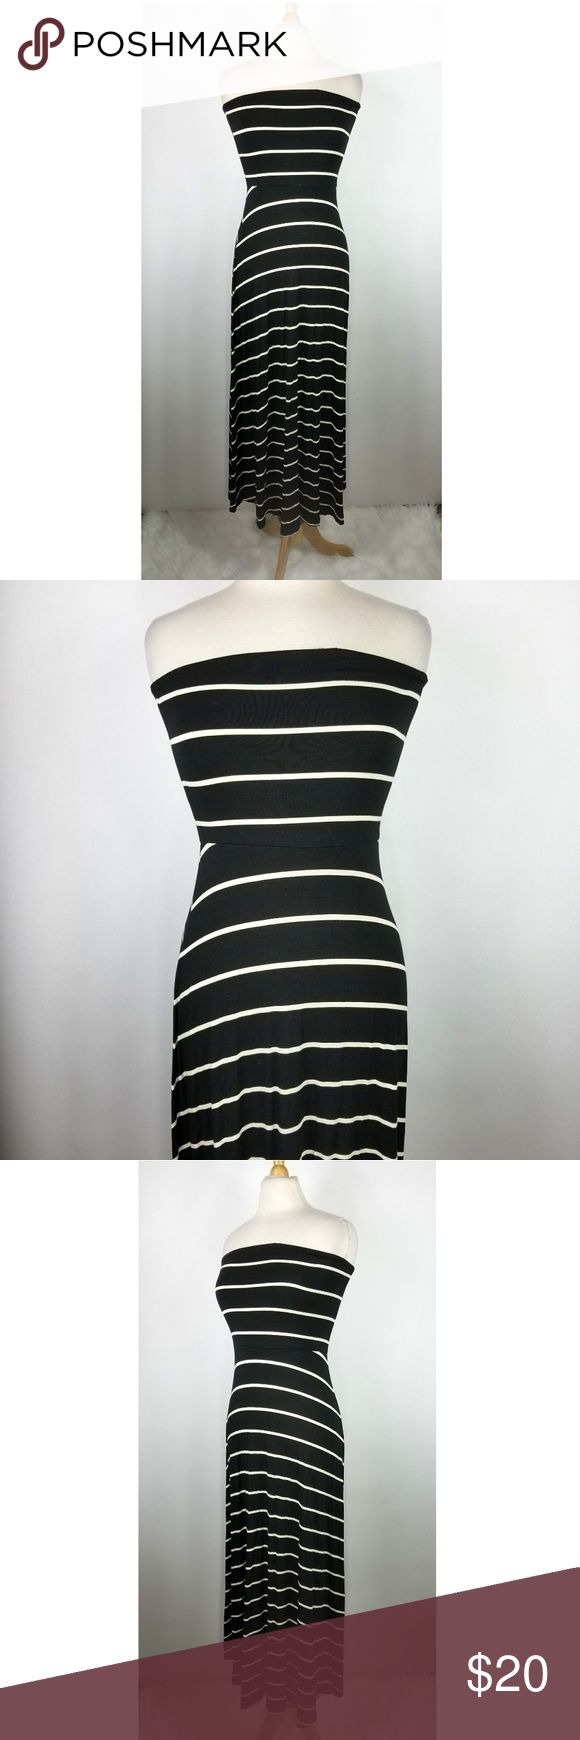 """Mudd Black White Convertible Maxi Dress Mudd women's black / white striped tube maxi dress. This can convert / roll down to be a maxi skirt. Size M. Made of 95% rayon, 5% spandex. Gently used, clean.   14"""" armpit to armpit  13"""" across at waist 51"""" long (shoulder to bottom) Mudd Dresses Maxi"""